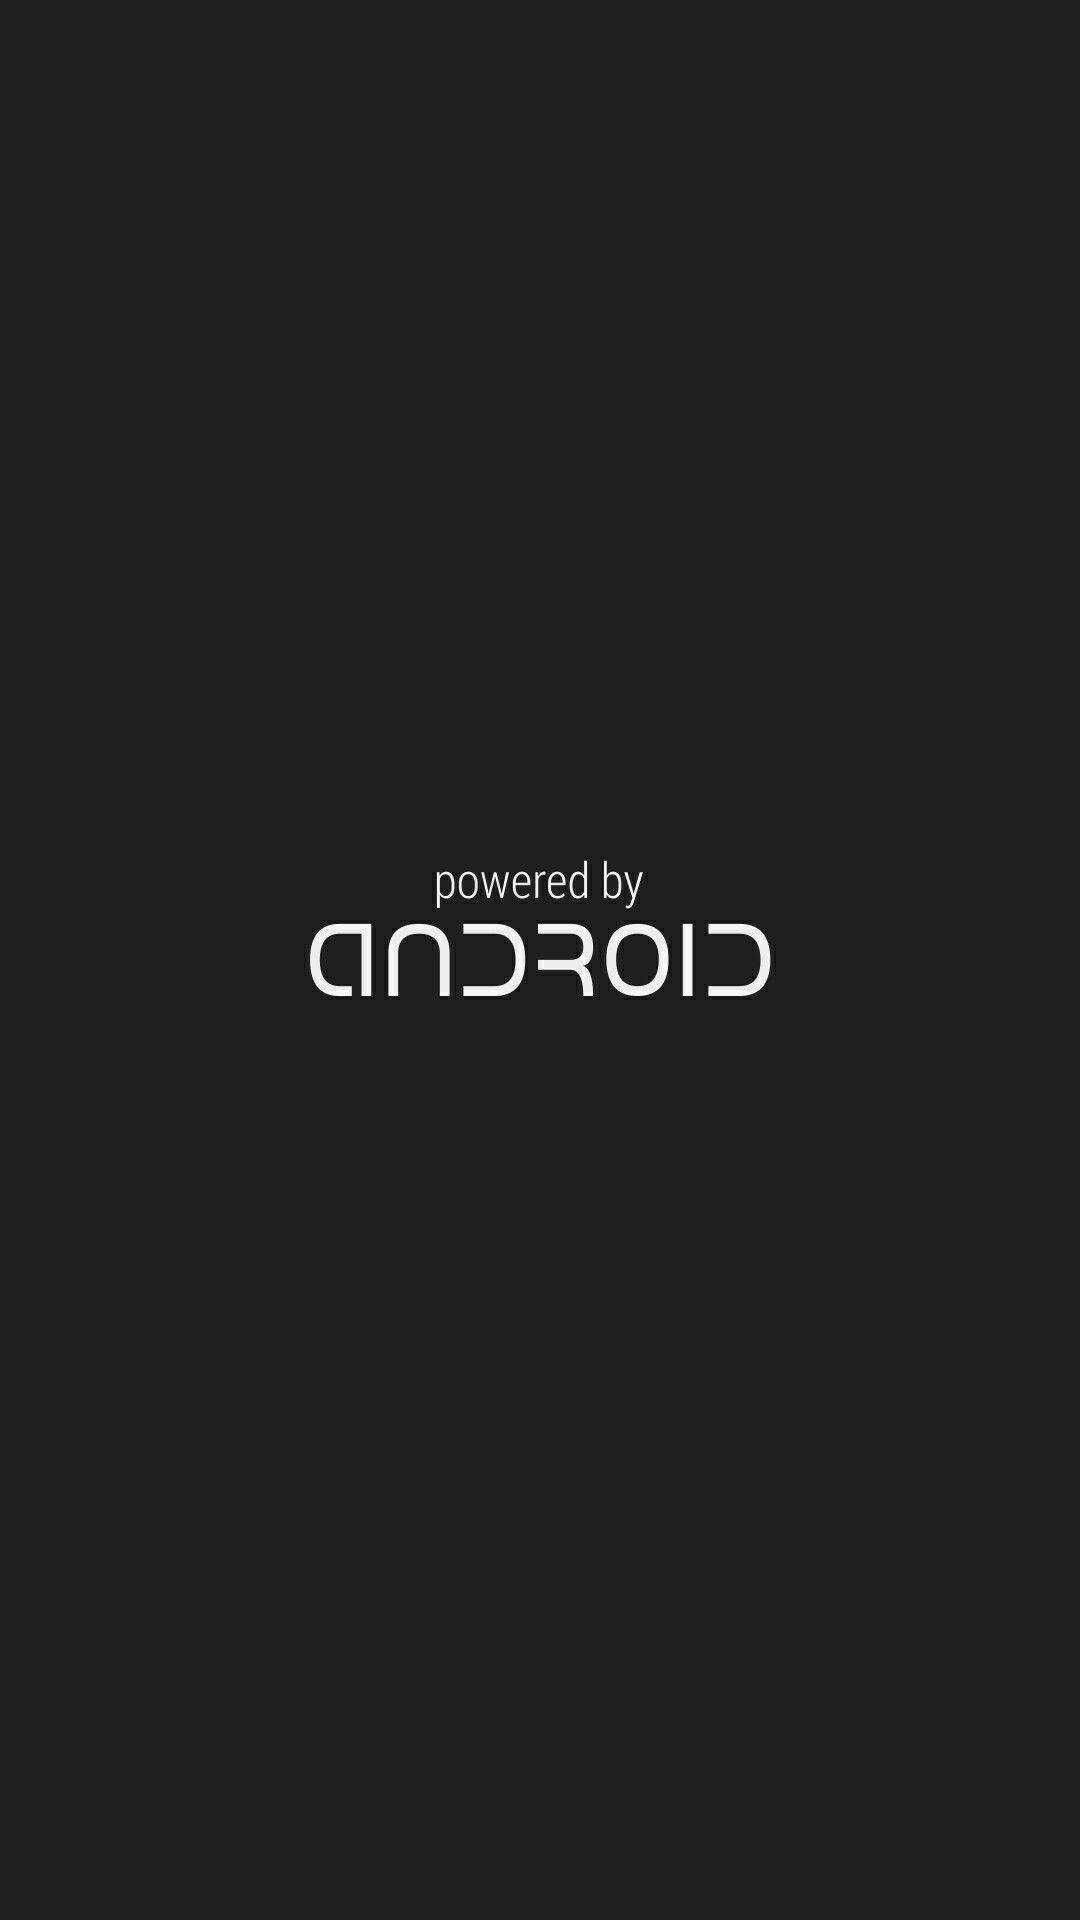 Para Boot Logo Android Pinterest Android Mobile Wallpaper